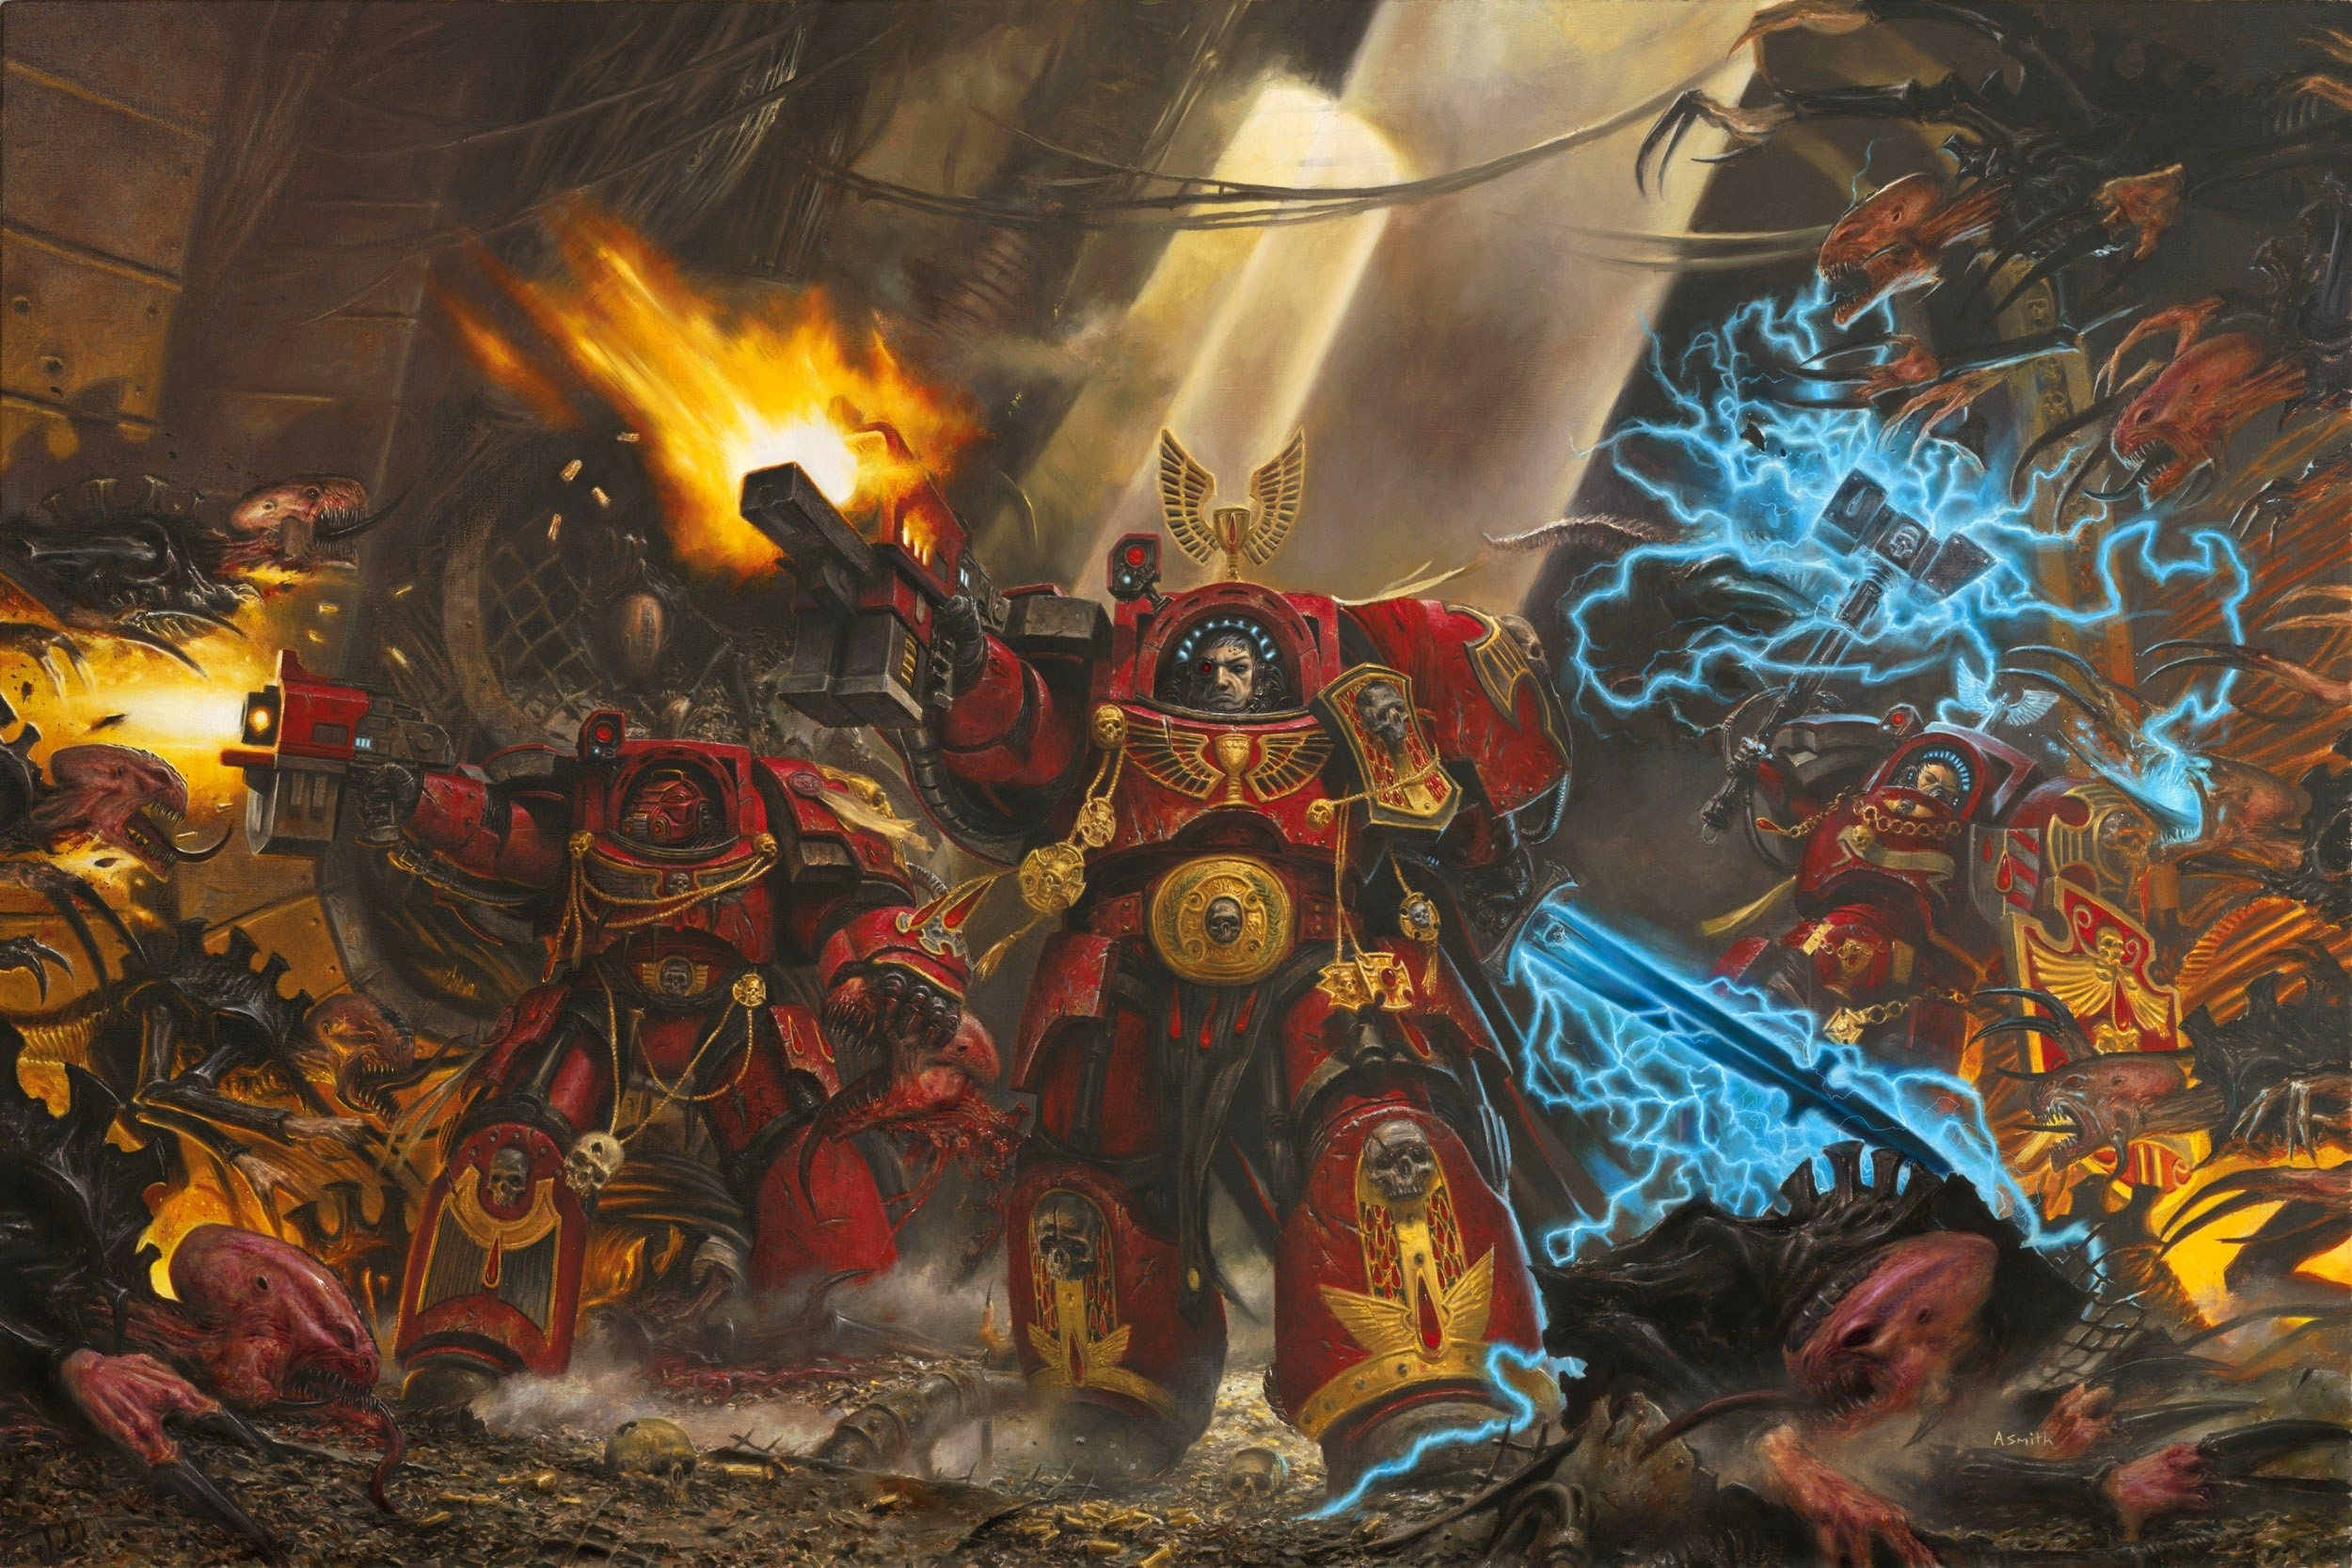 Adrian smith, spacehulk, warhammer 40k, blood angels, armor, gun